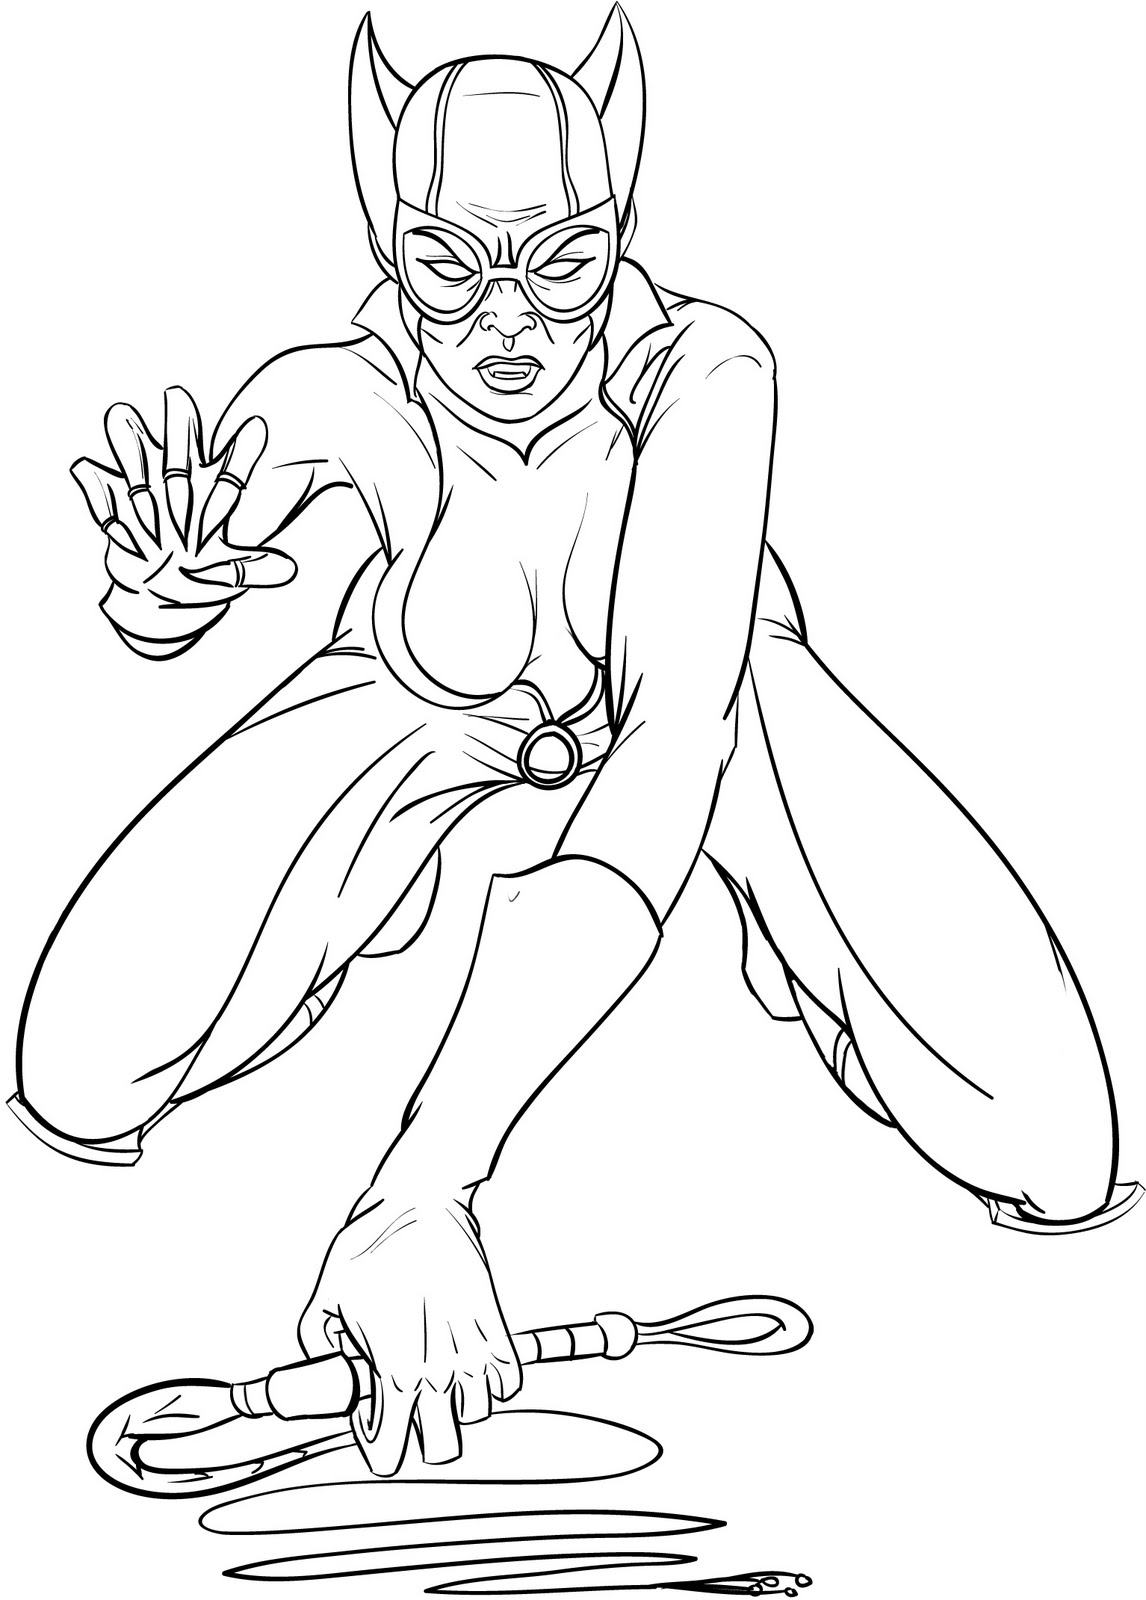 Catwoman printable coloring pages